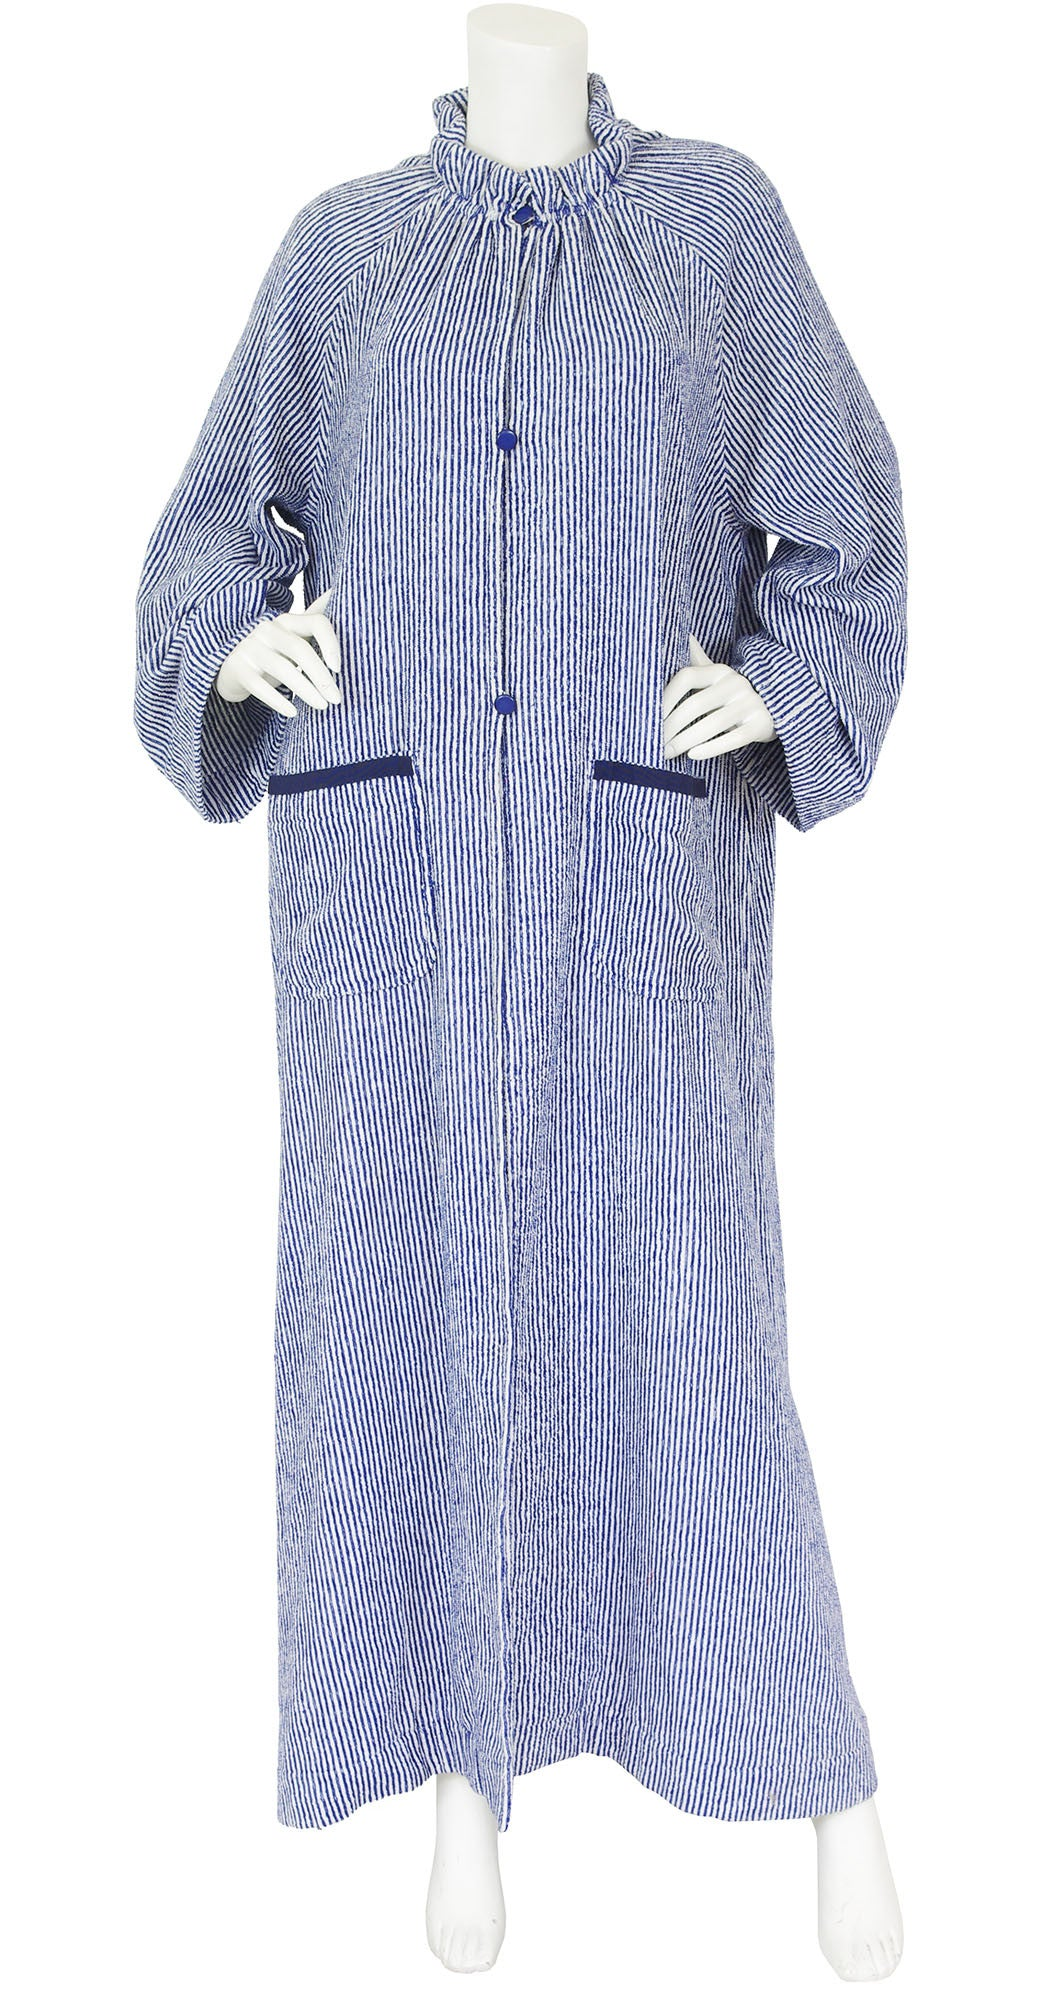 Haute Couture 1970s Striped Terry Cloth Caftan Robe